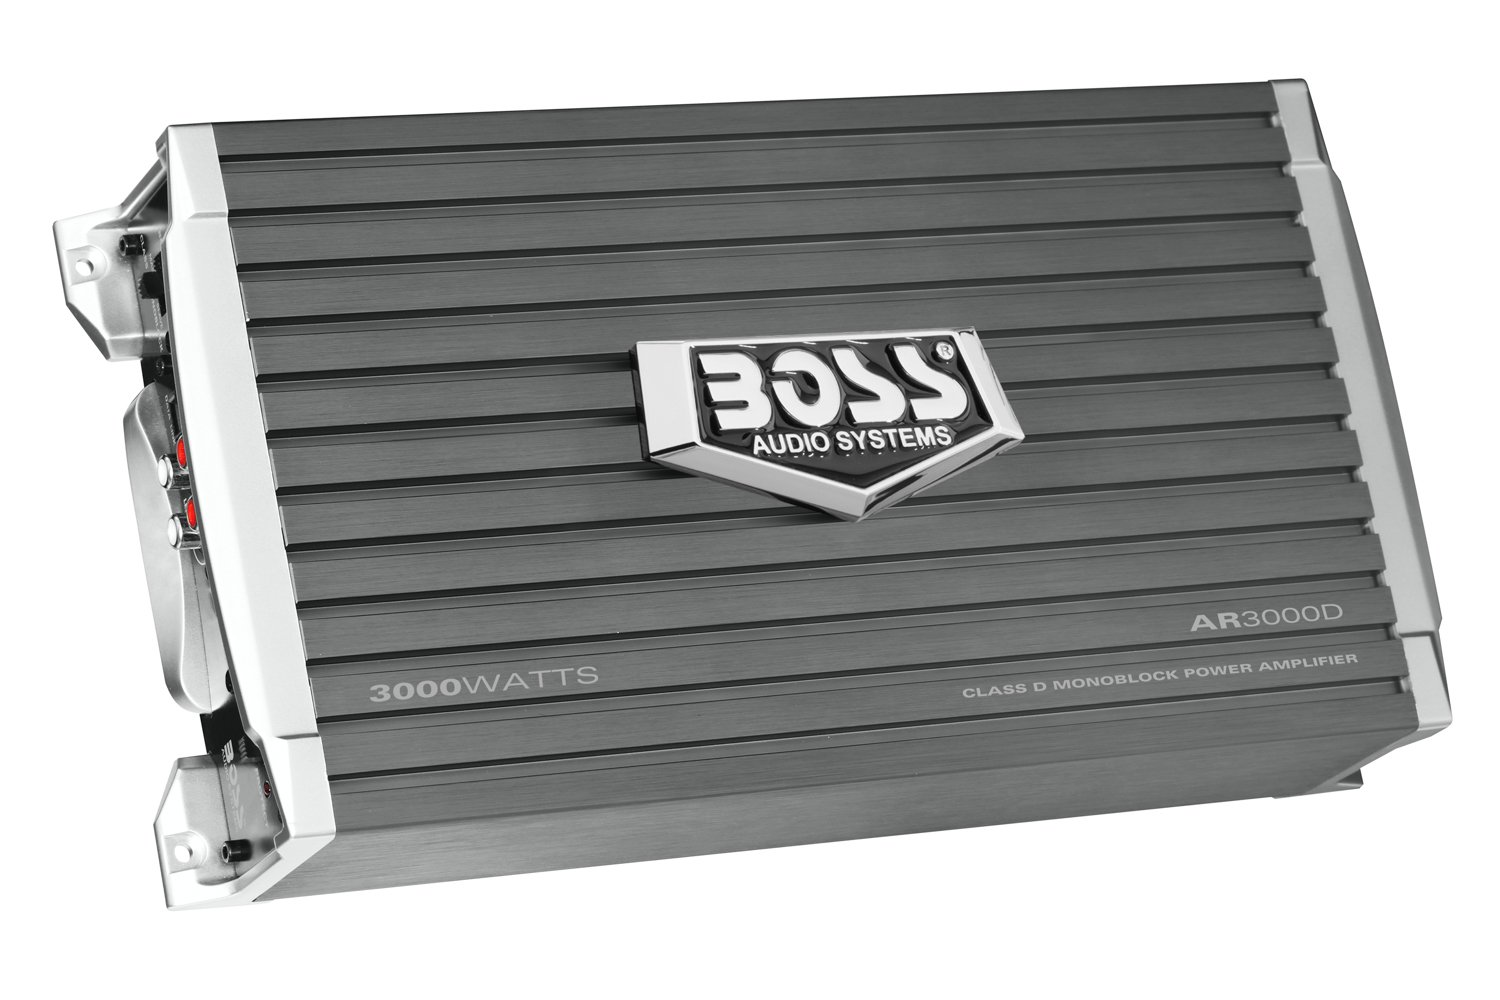 BOSS AUDIO AR3000D Car Amplifier - 3000 Watts, 1/2/4 Ohm Stable, Class D, Monoblock, Remote Subwoofer Control